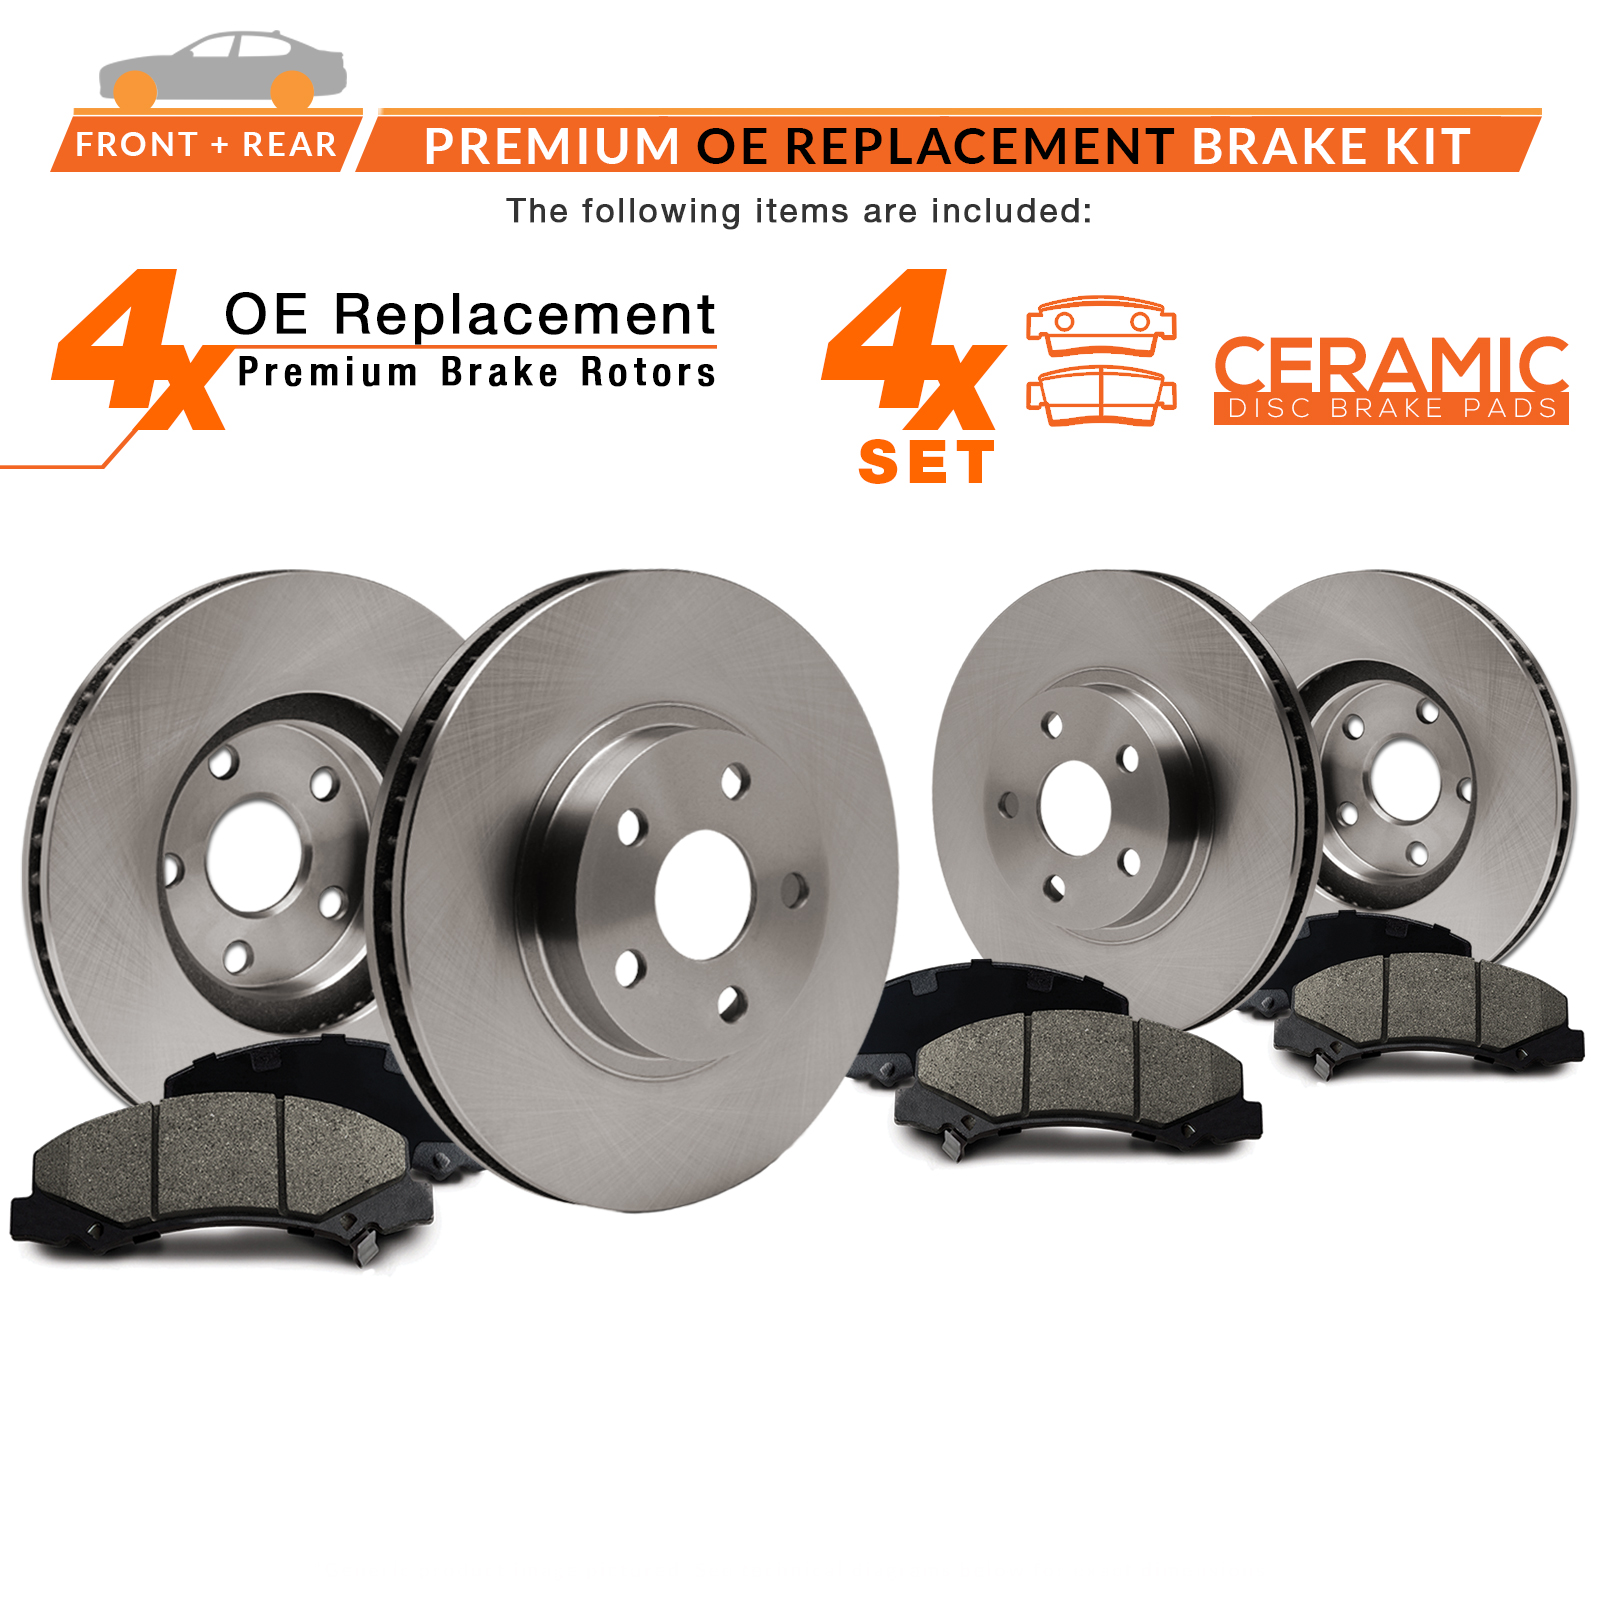 KT119042 Fits: 2007 07 Suzuki SX4 w//Rear Disc Brakes Max Brakes Rear Premium Brake Kit OE Series Rotors + Ceramic Pads